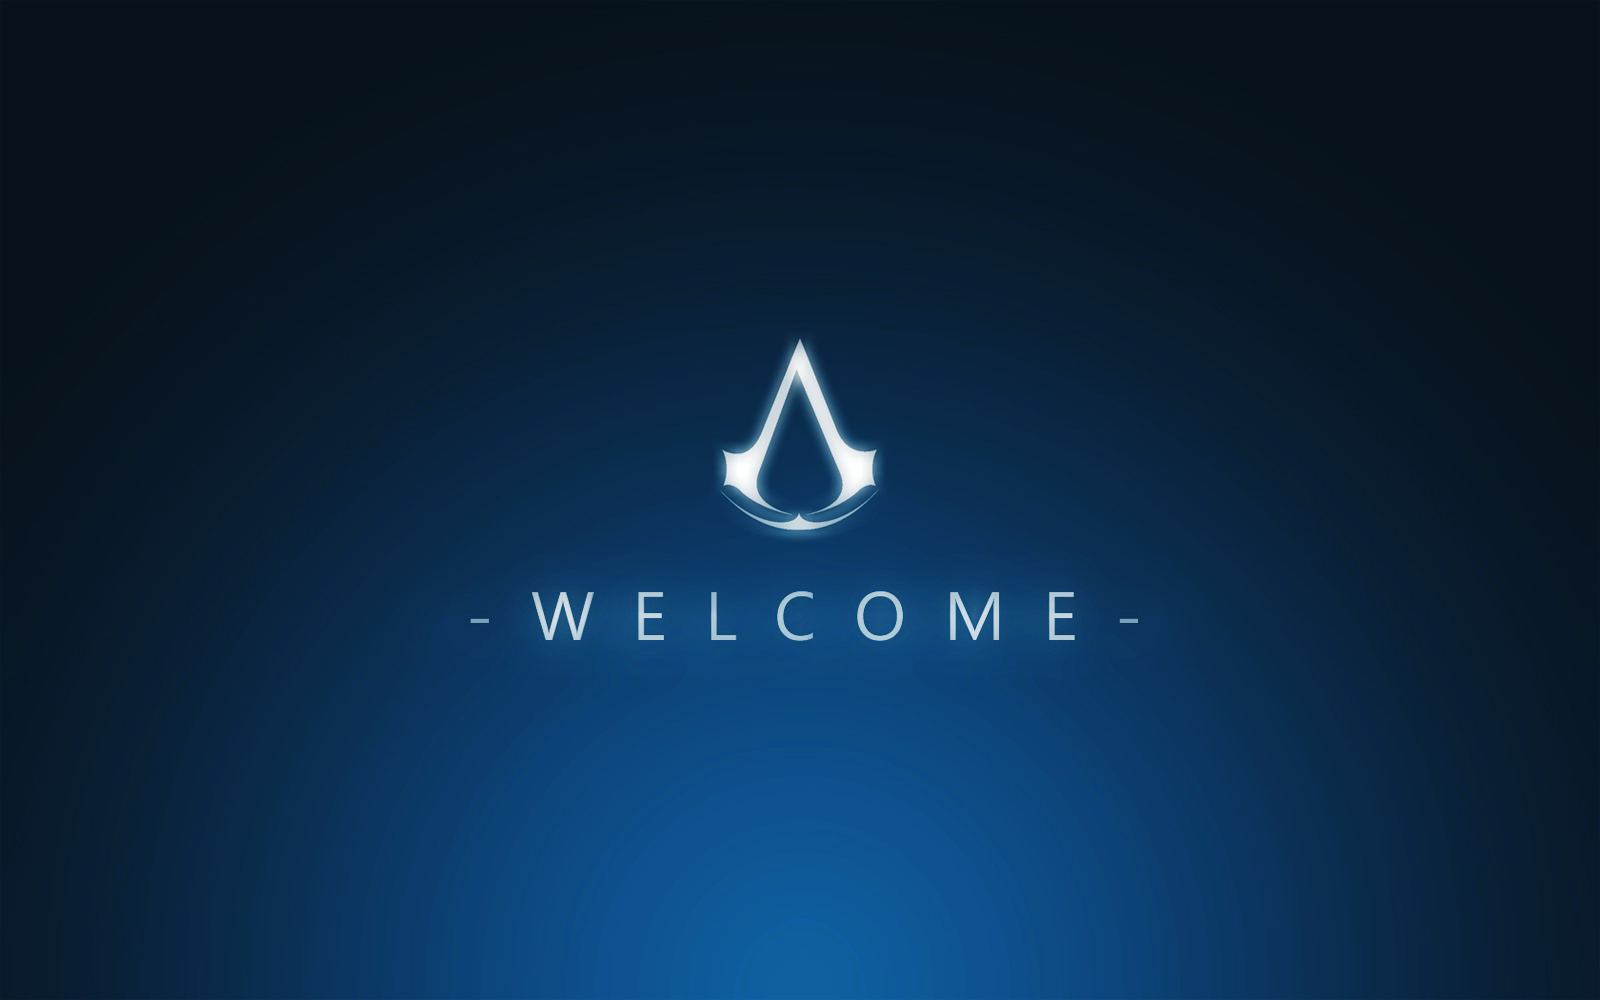 Assassins Creed Logo Wallpaper - WallpaperSafari